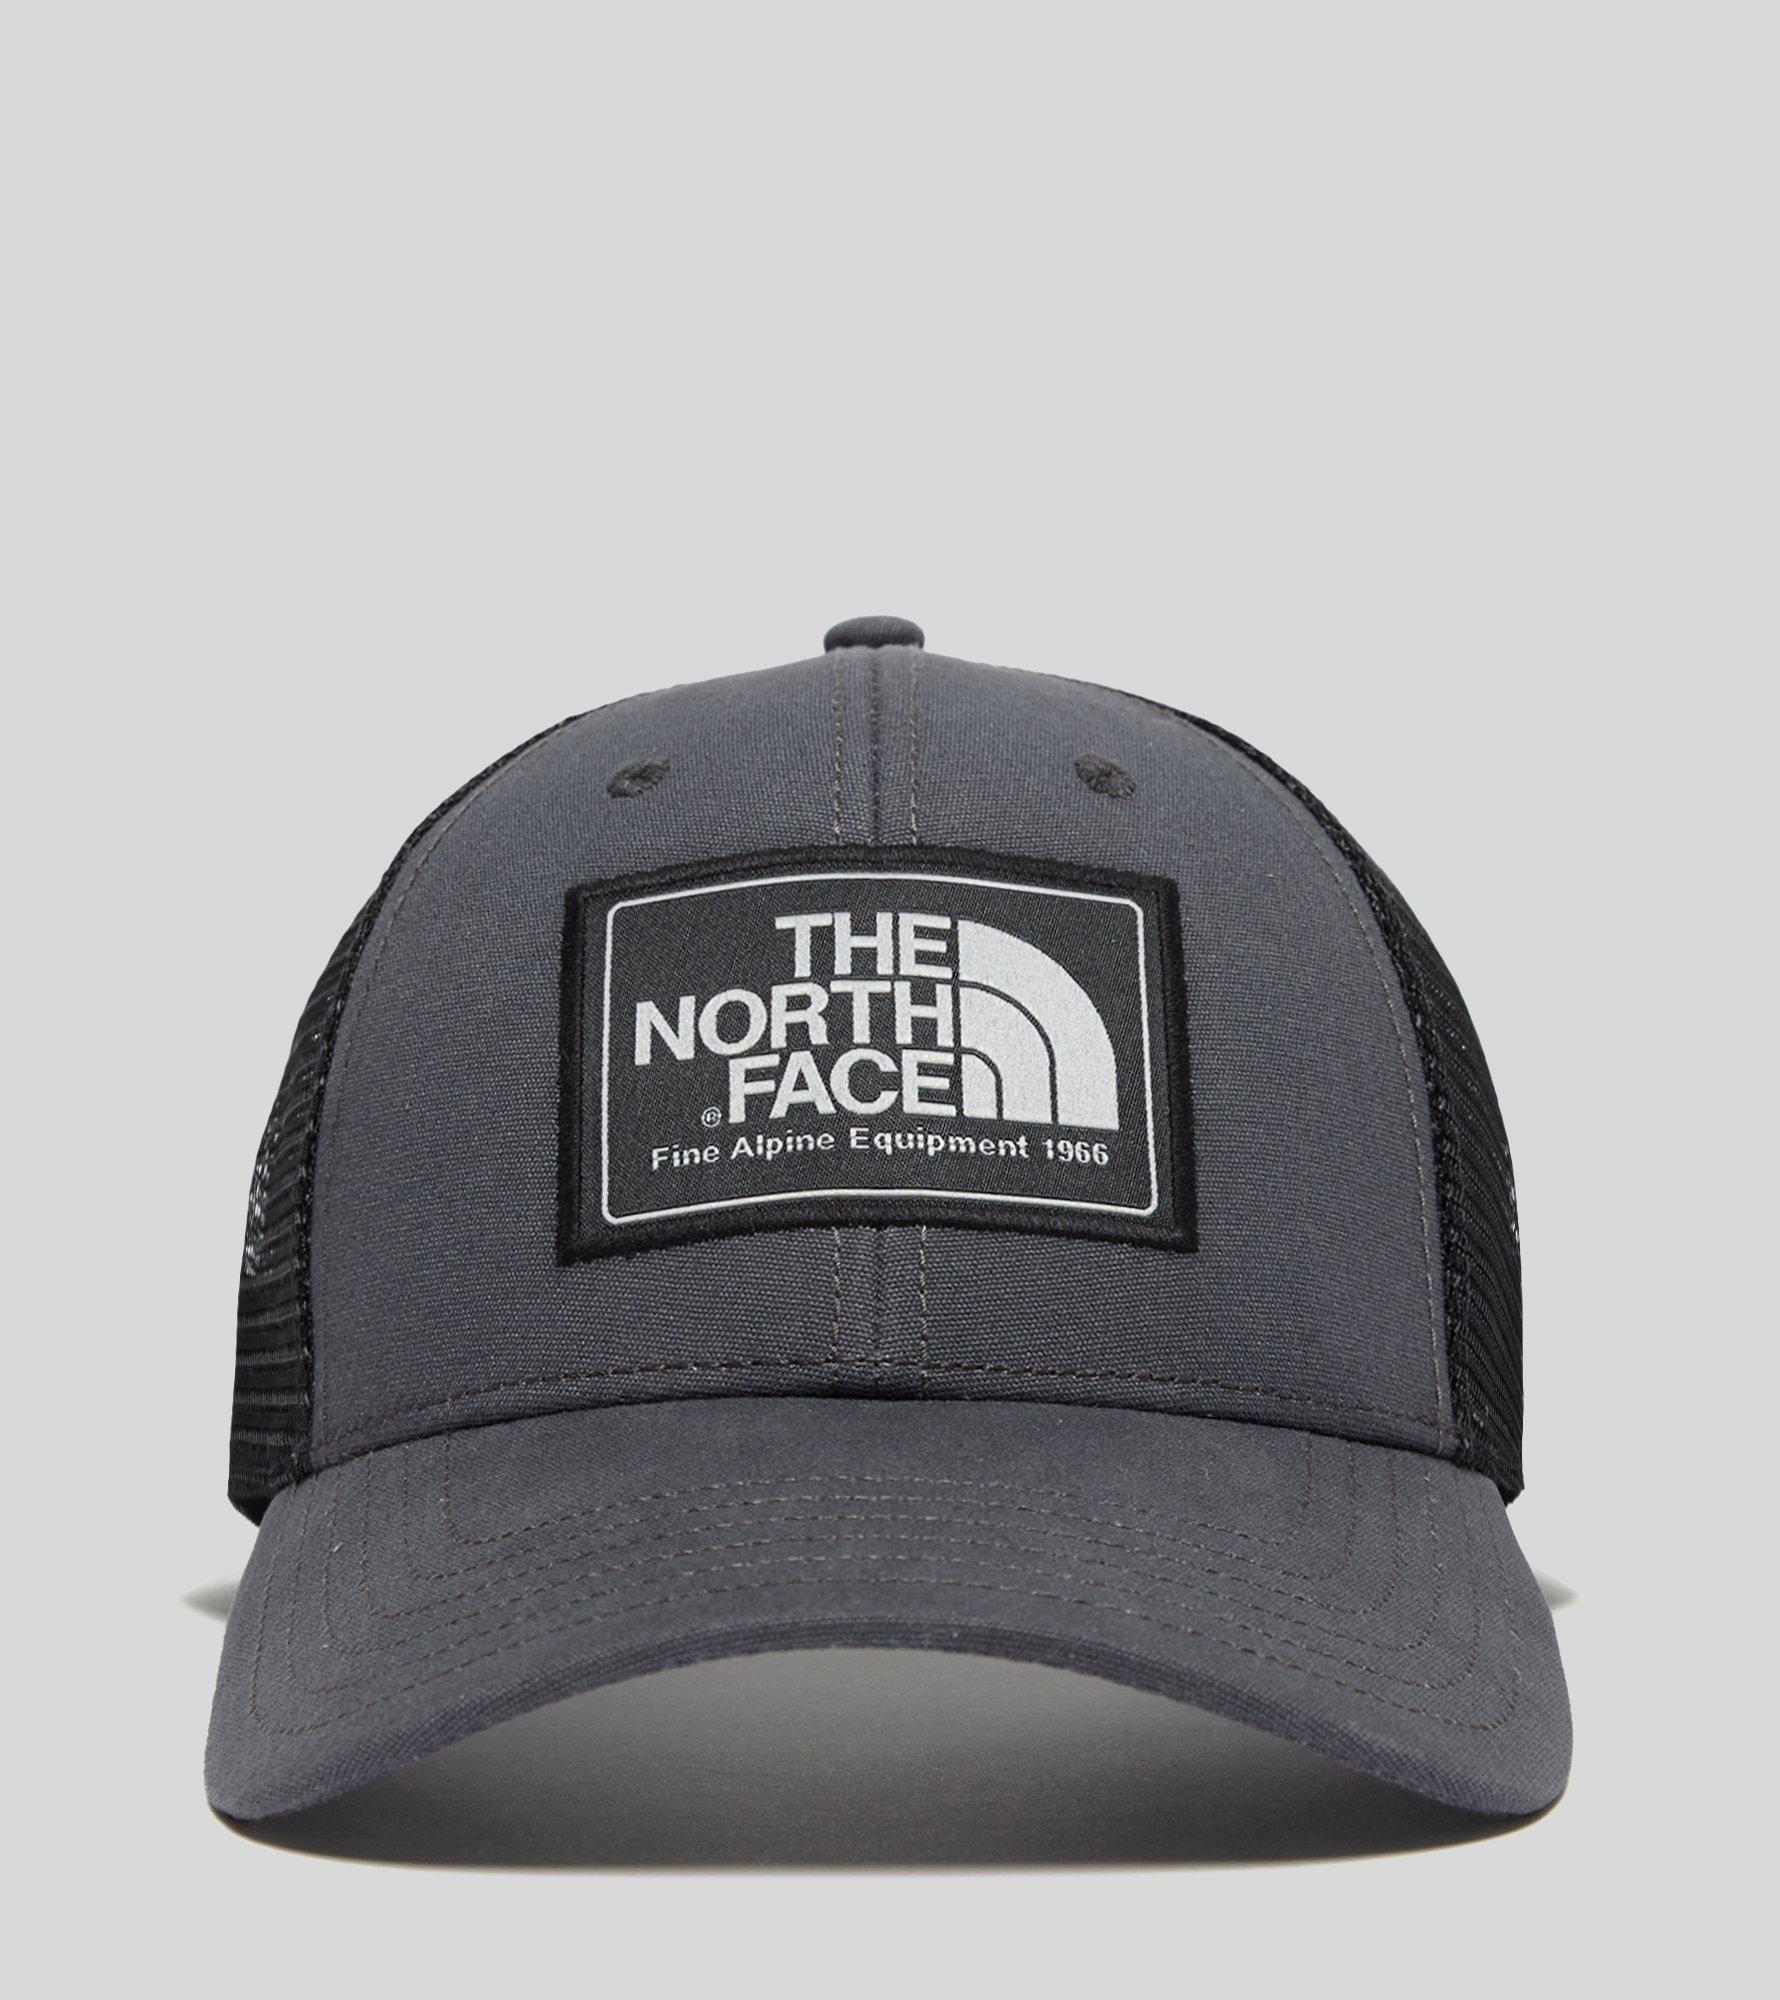 c322077155f6a Lyst - The North Face Mudder Trucker Cap in Gray for Men